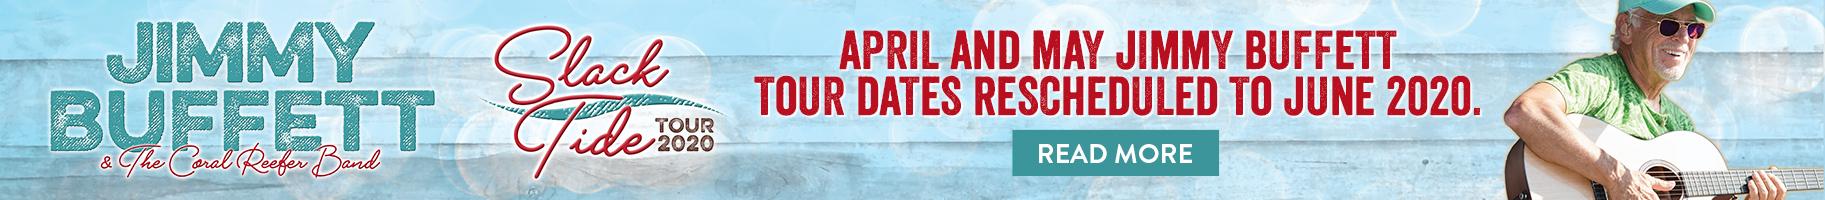 April and May Jimmy Buffett Tour Dates Rescheduled to June 2020 - Read More